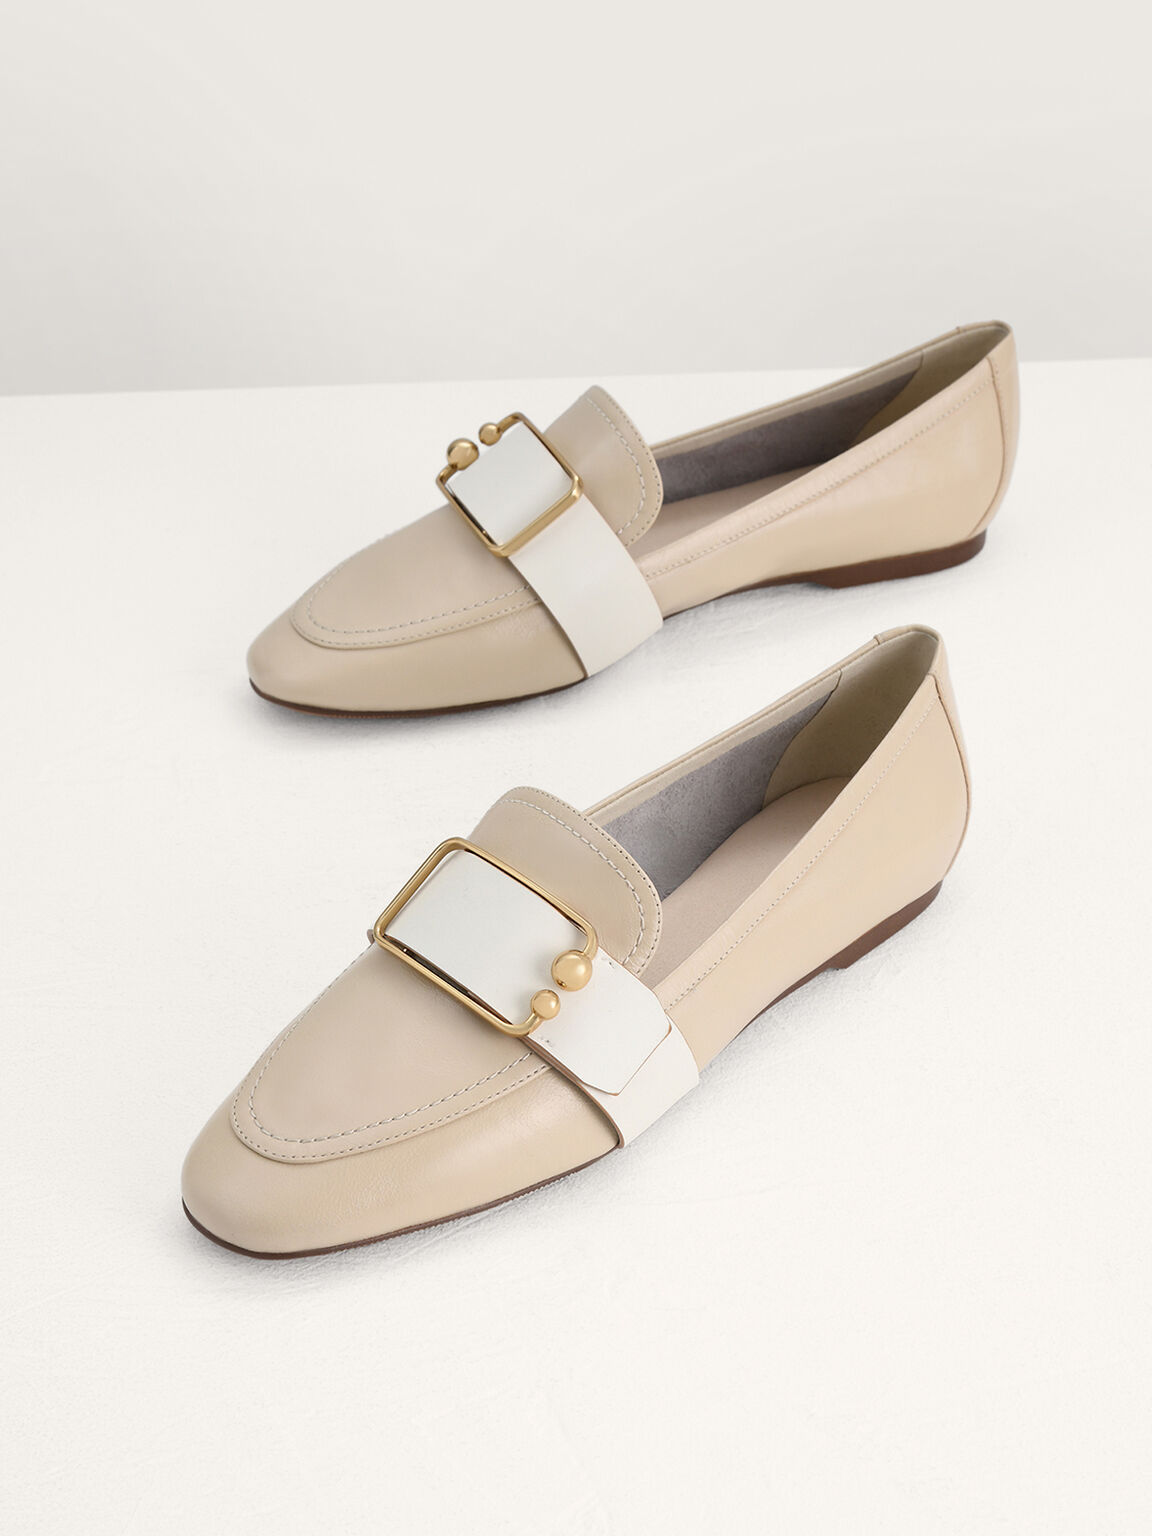 Buckle Leather Loafers, Beige, hi-res